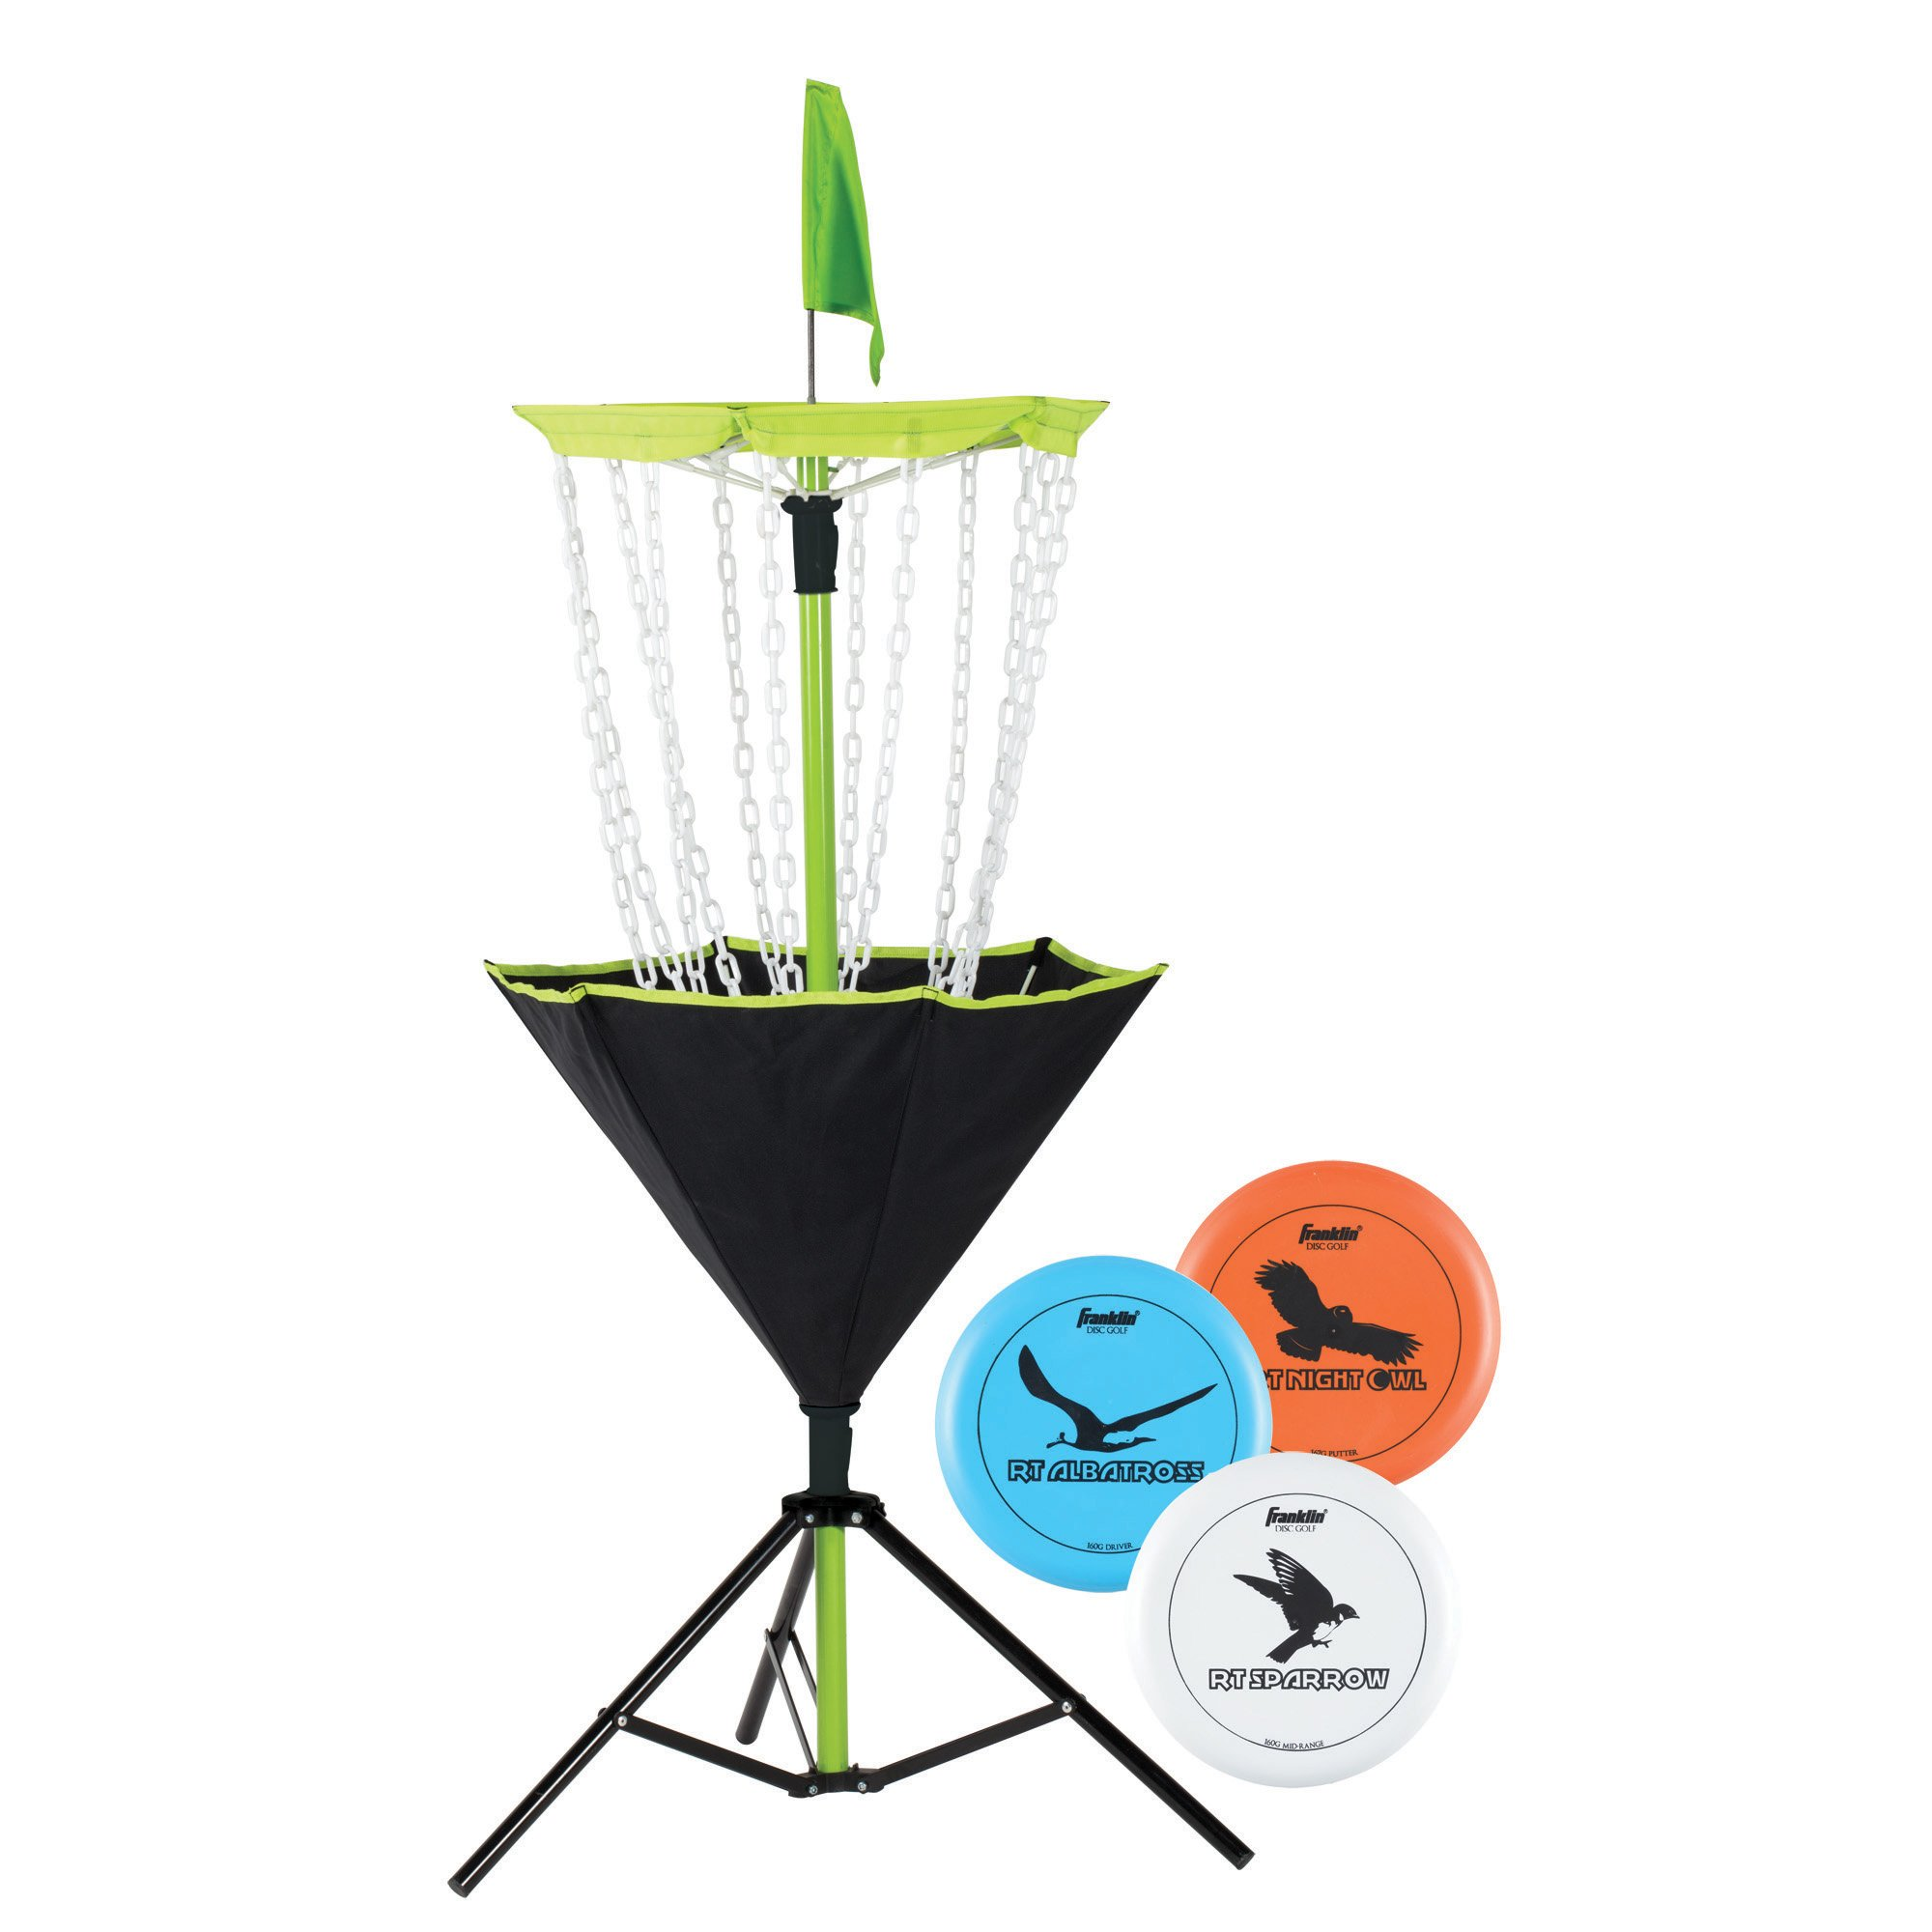 Franklin Sports Disc Golf Set - Disc Golf - Includes Disc Golf Basket, Three Golf Discs and Carrying Bag by Franklin Sports